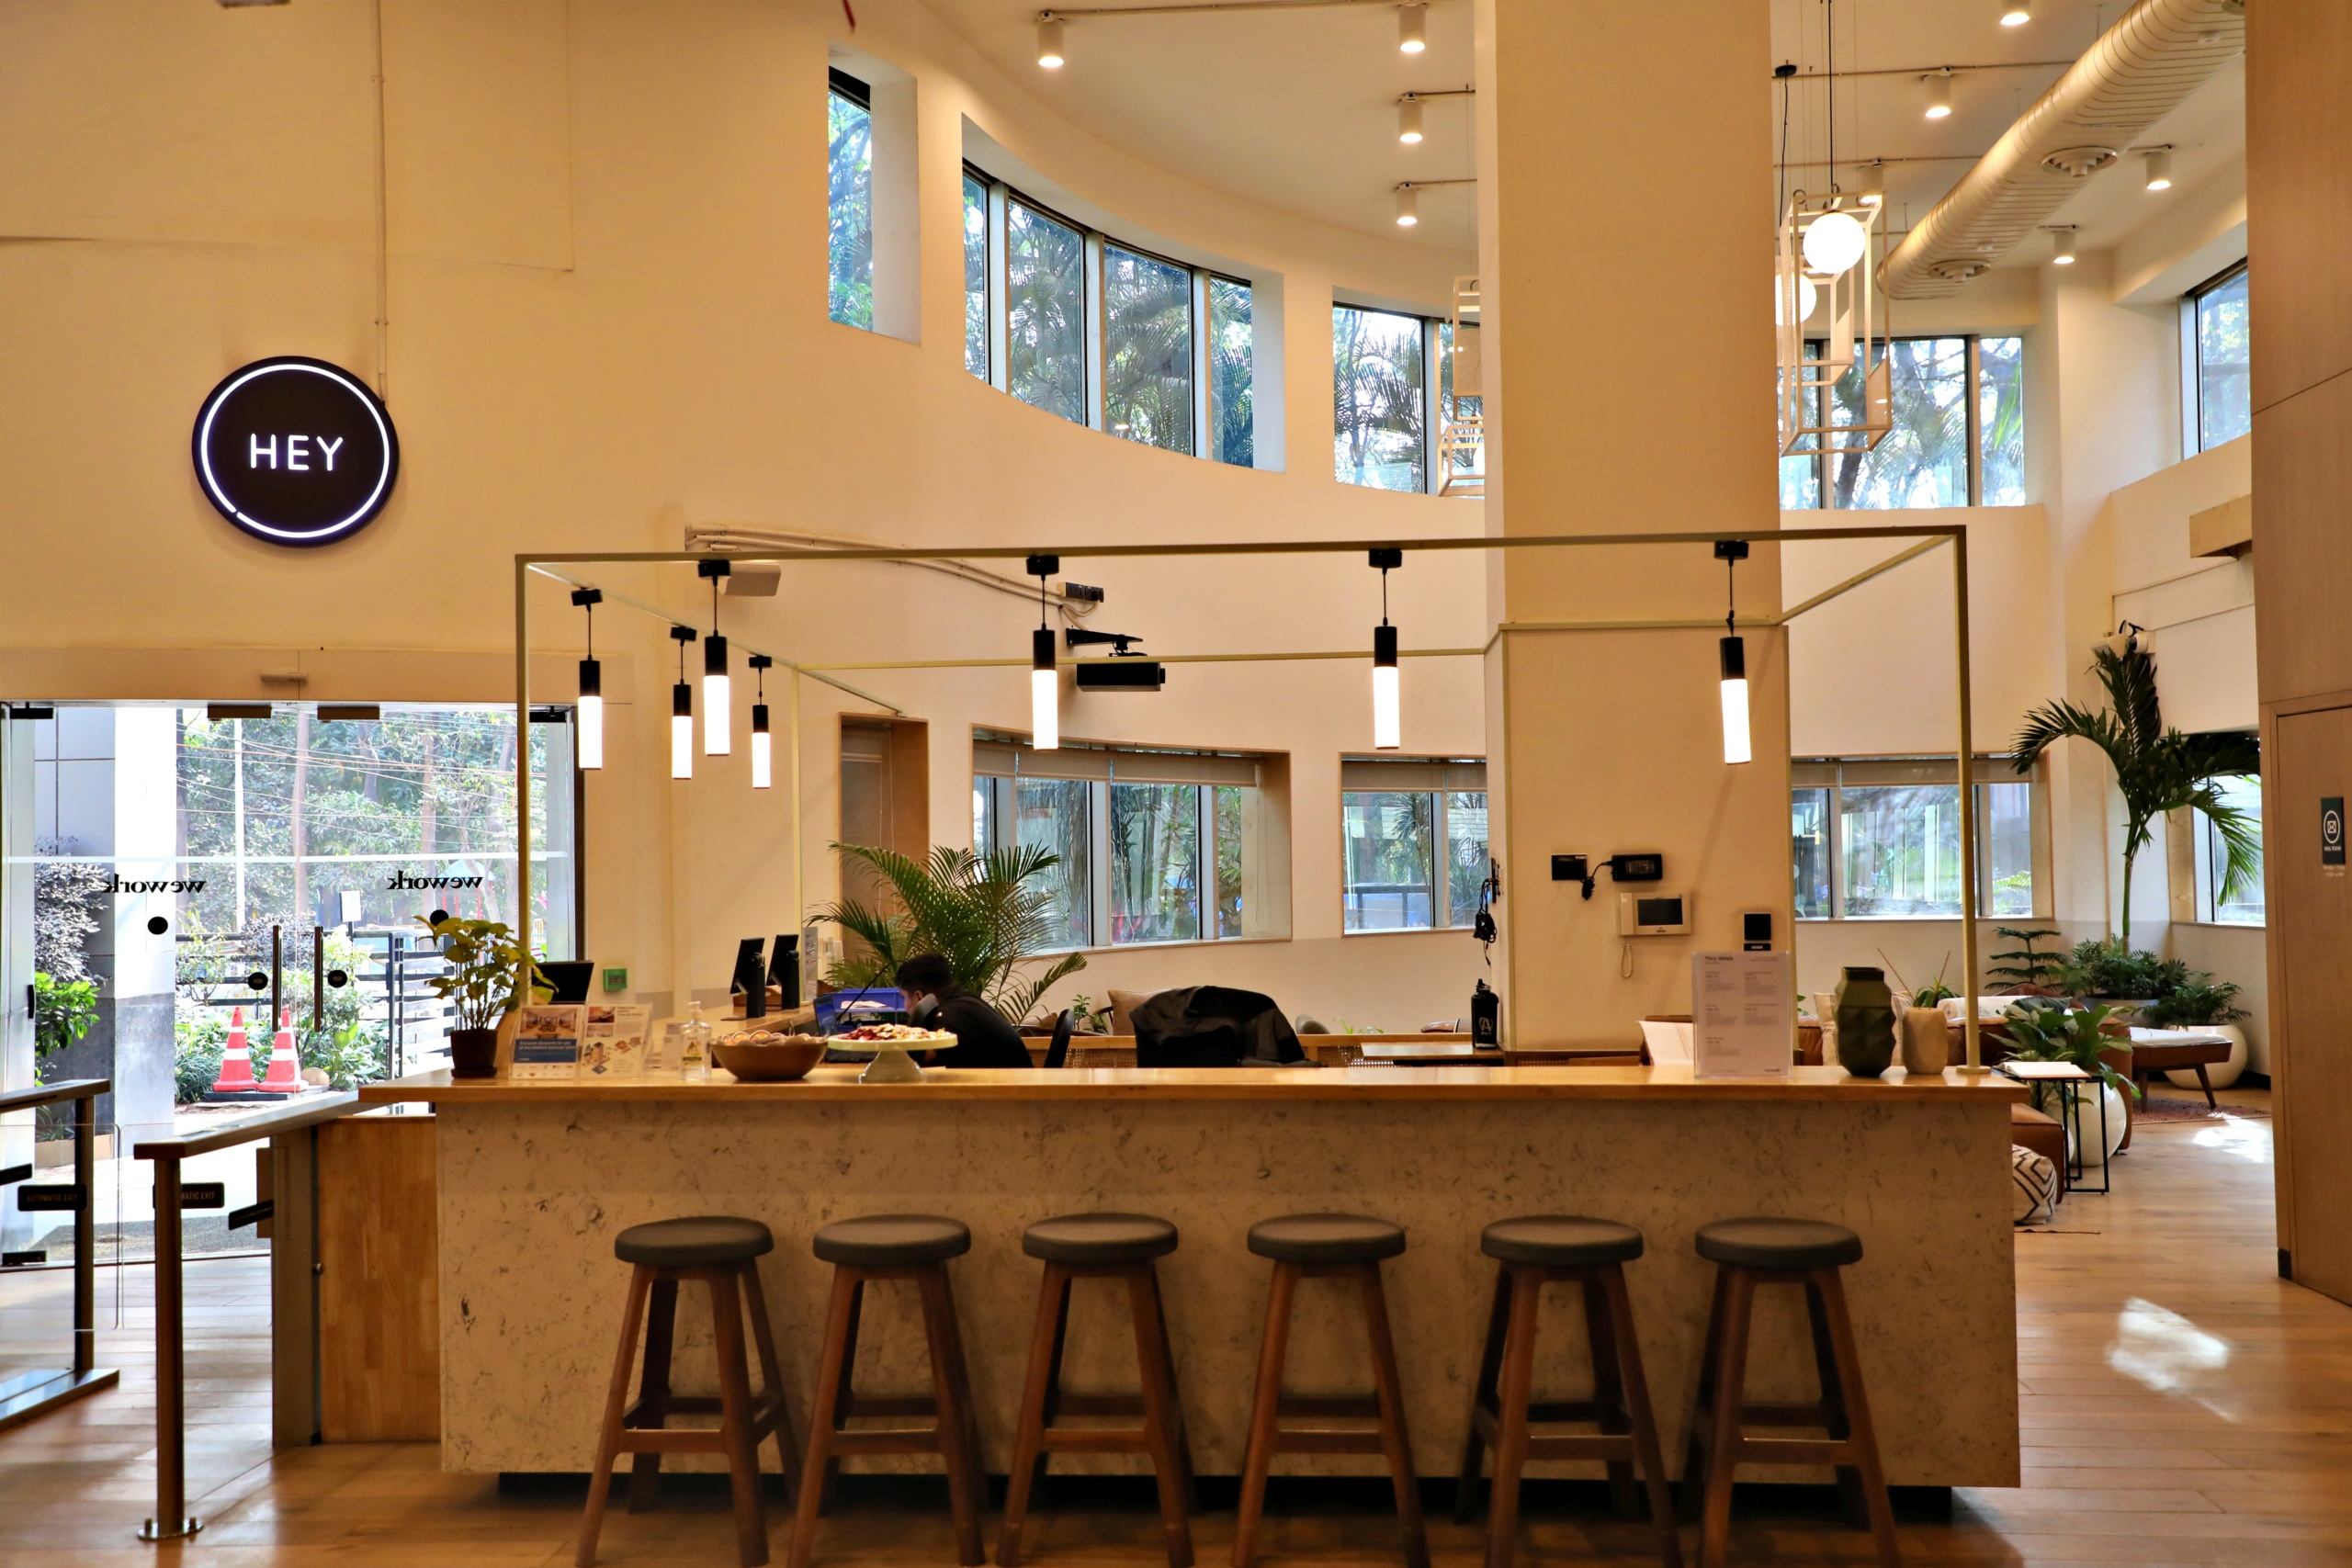 Photo of the interior of WeWork, Prestige Atlanta, 80 Feet Road, Koramangala 1A Block, Koramangala 3 Block, Koramangala, Bengaluru, Karnataka, India